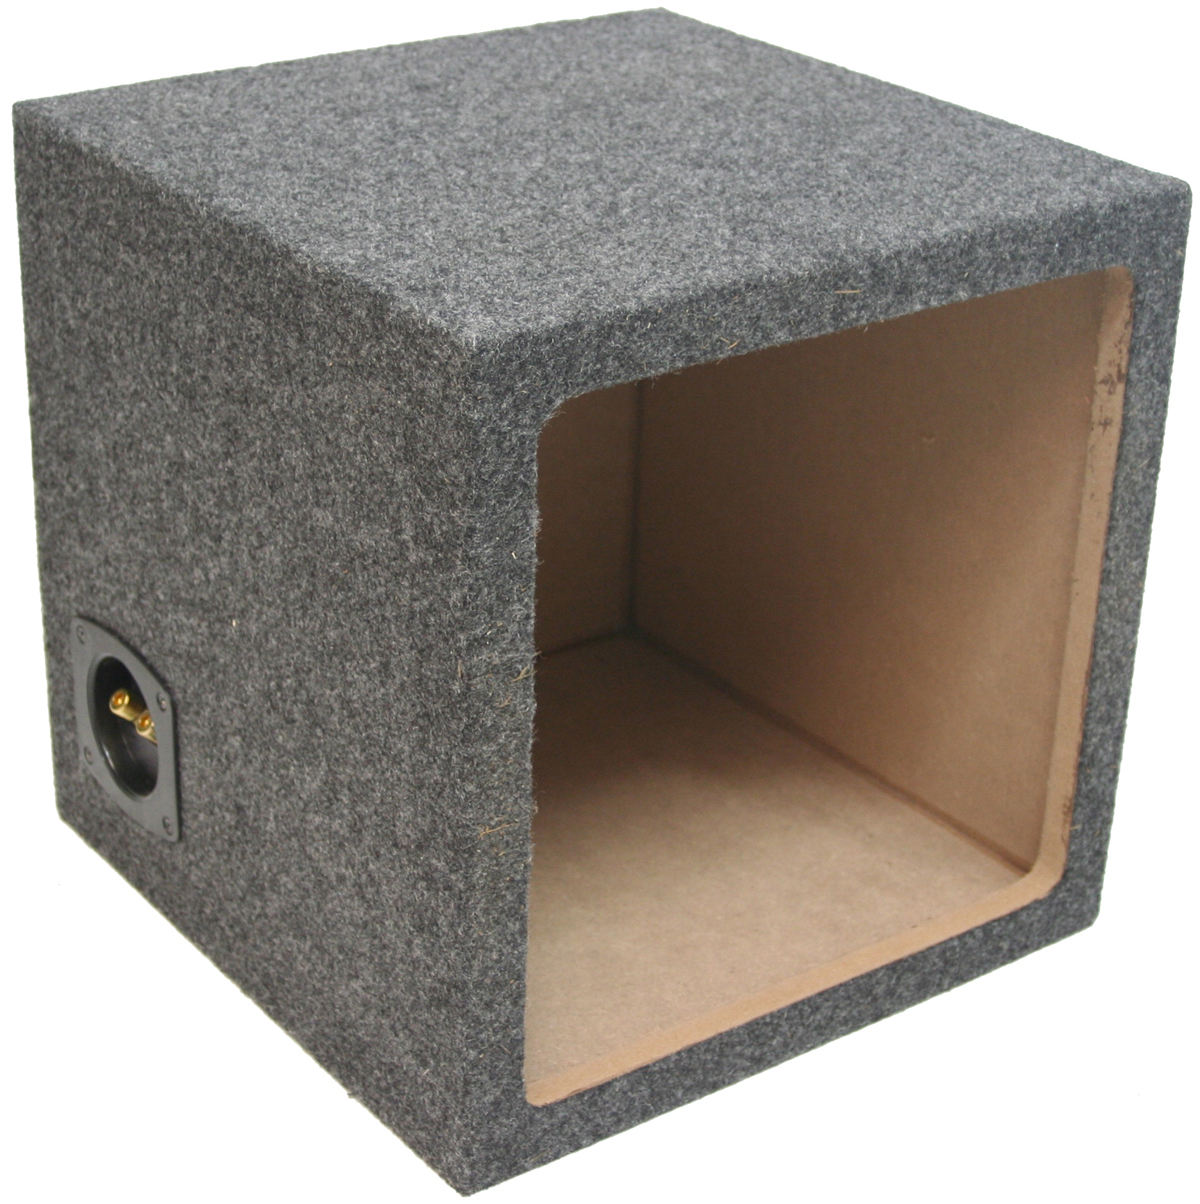 L ported dual subwoofer box design l free engine image for L ported sub box design